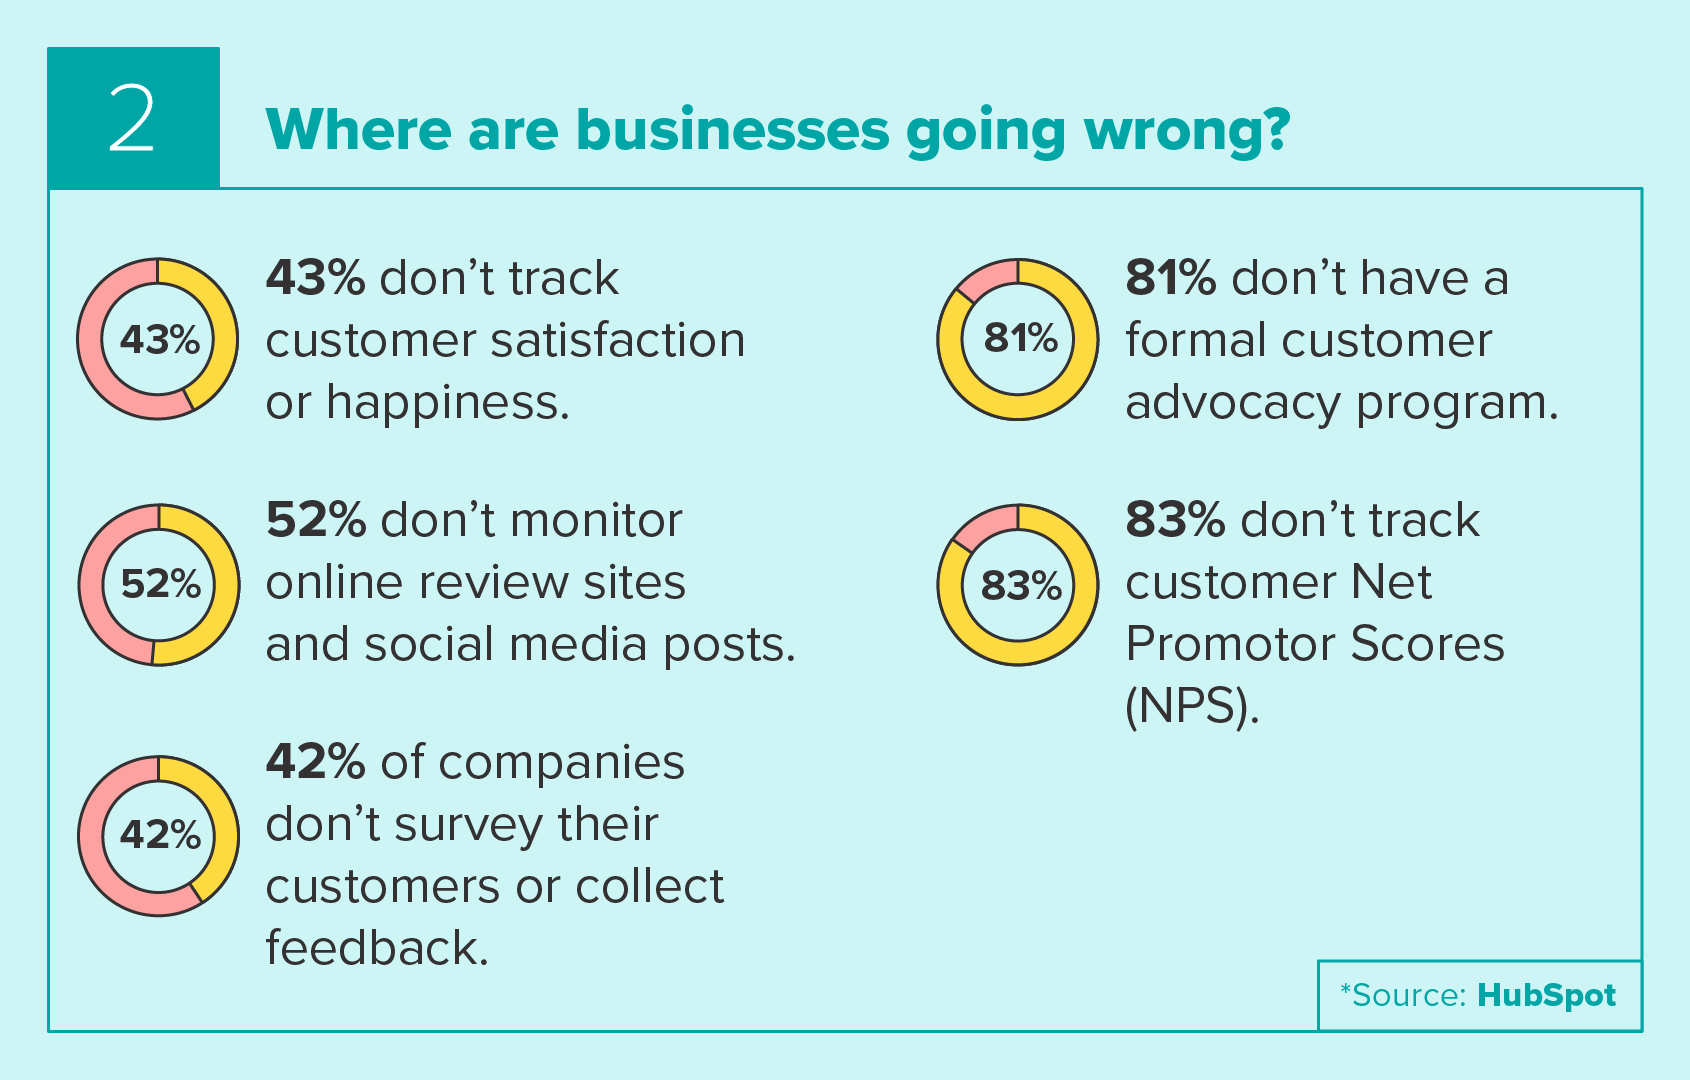 Where businesses are going wrong